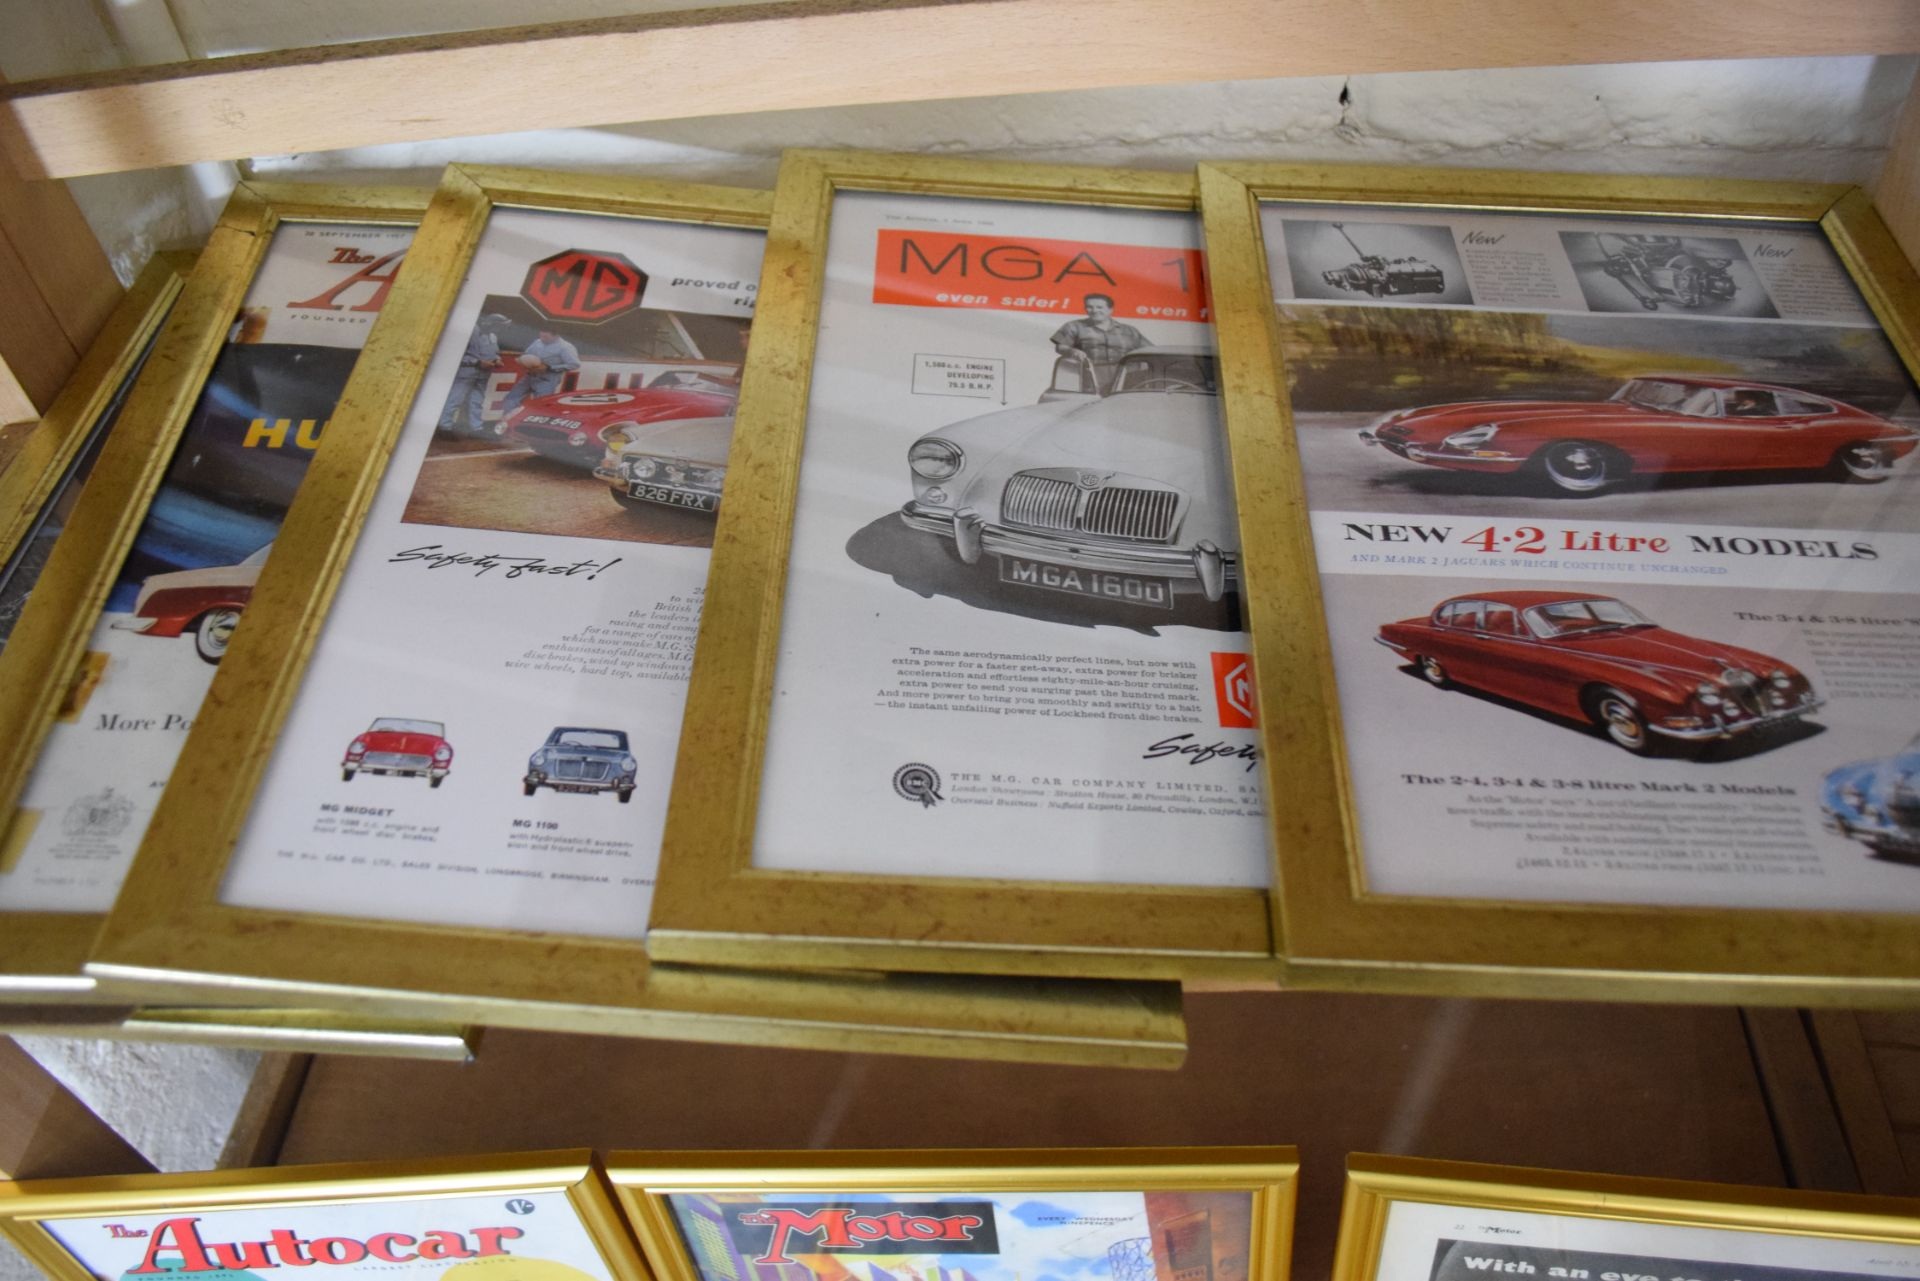 Quantity of framed magazine advertising prints from The Autocar magazine for MG and Morris cars - Image 2 of 3